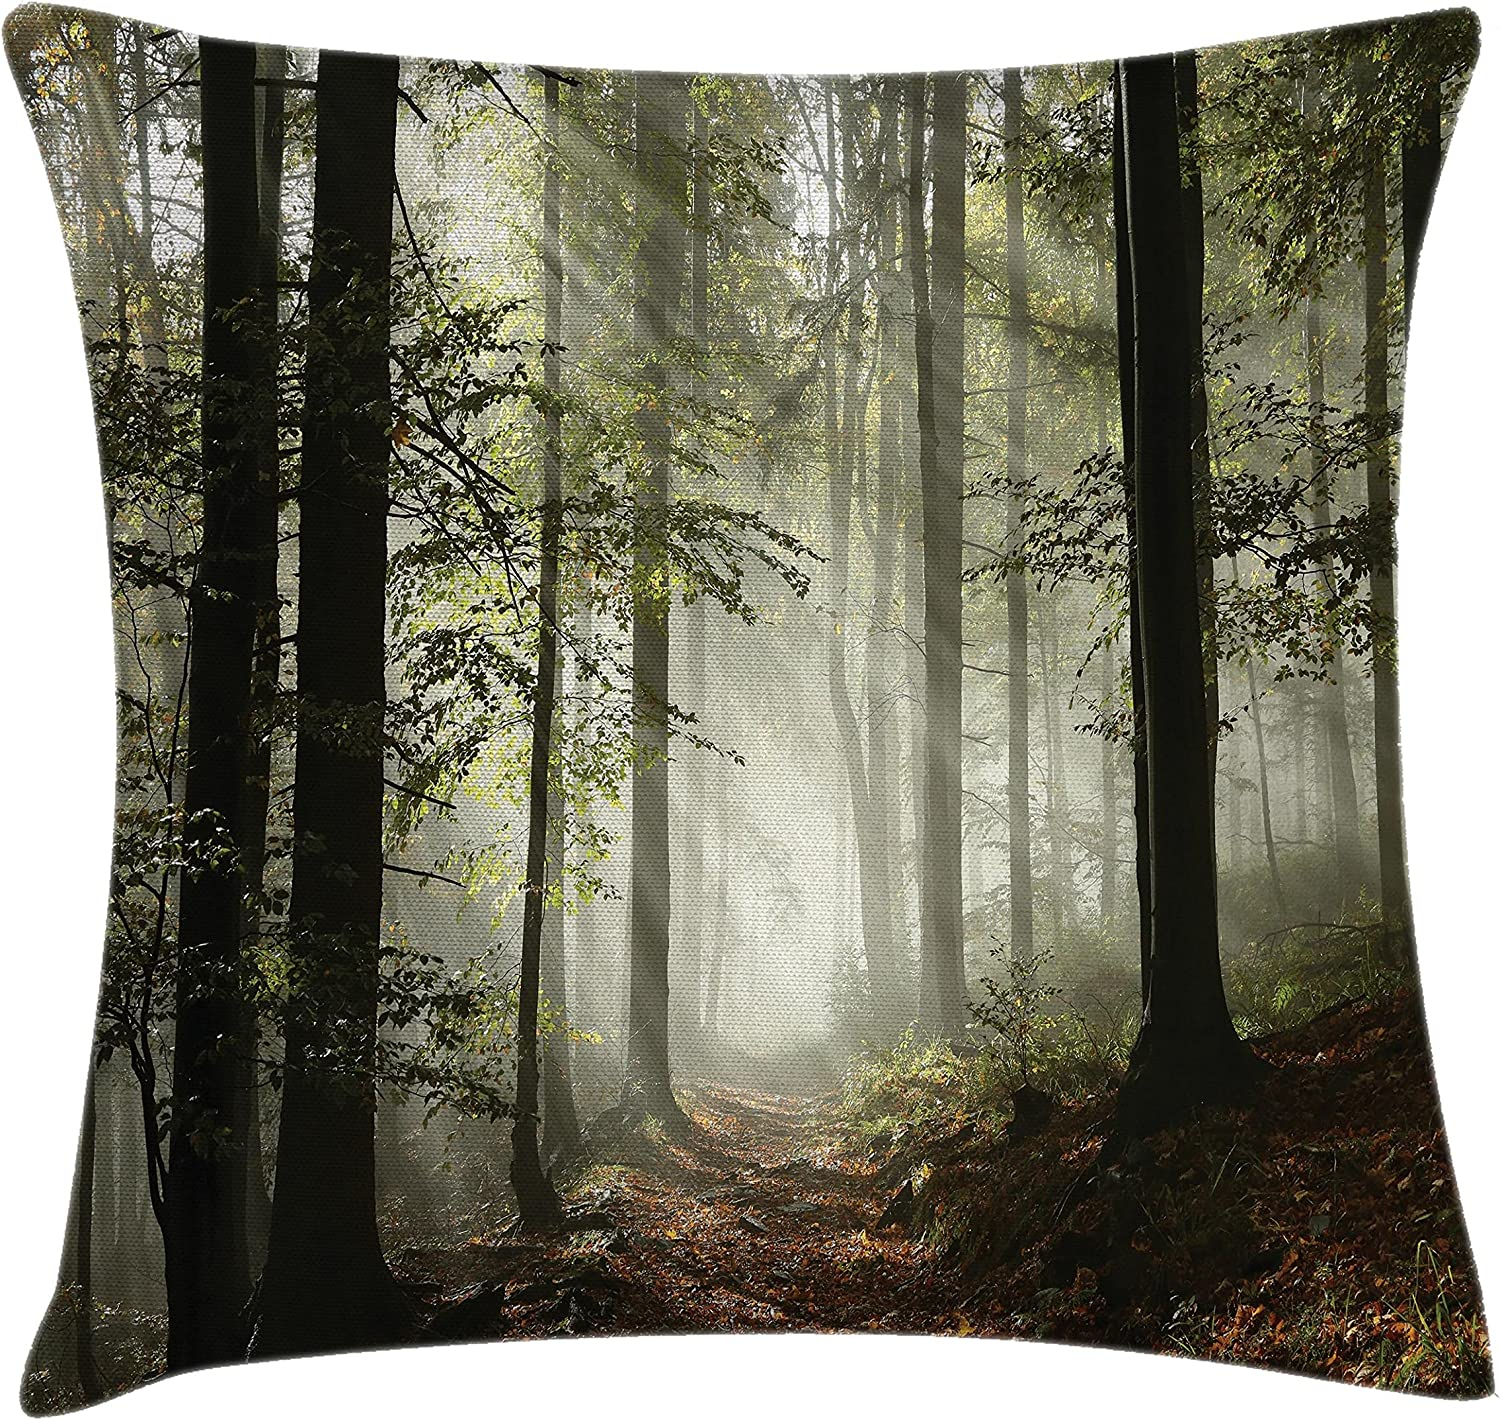 Amazon Com Lunarable Forest Throw Pillow Cushion Cover Dark Forest Route Surrounded By Fog In The Sunshine Day Time In Mother Earth Image Decorative Square Accent Pillow Case 36 X 36 Green Brown